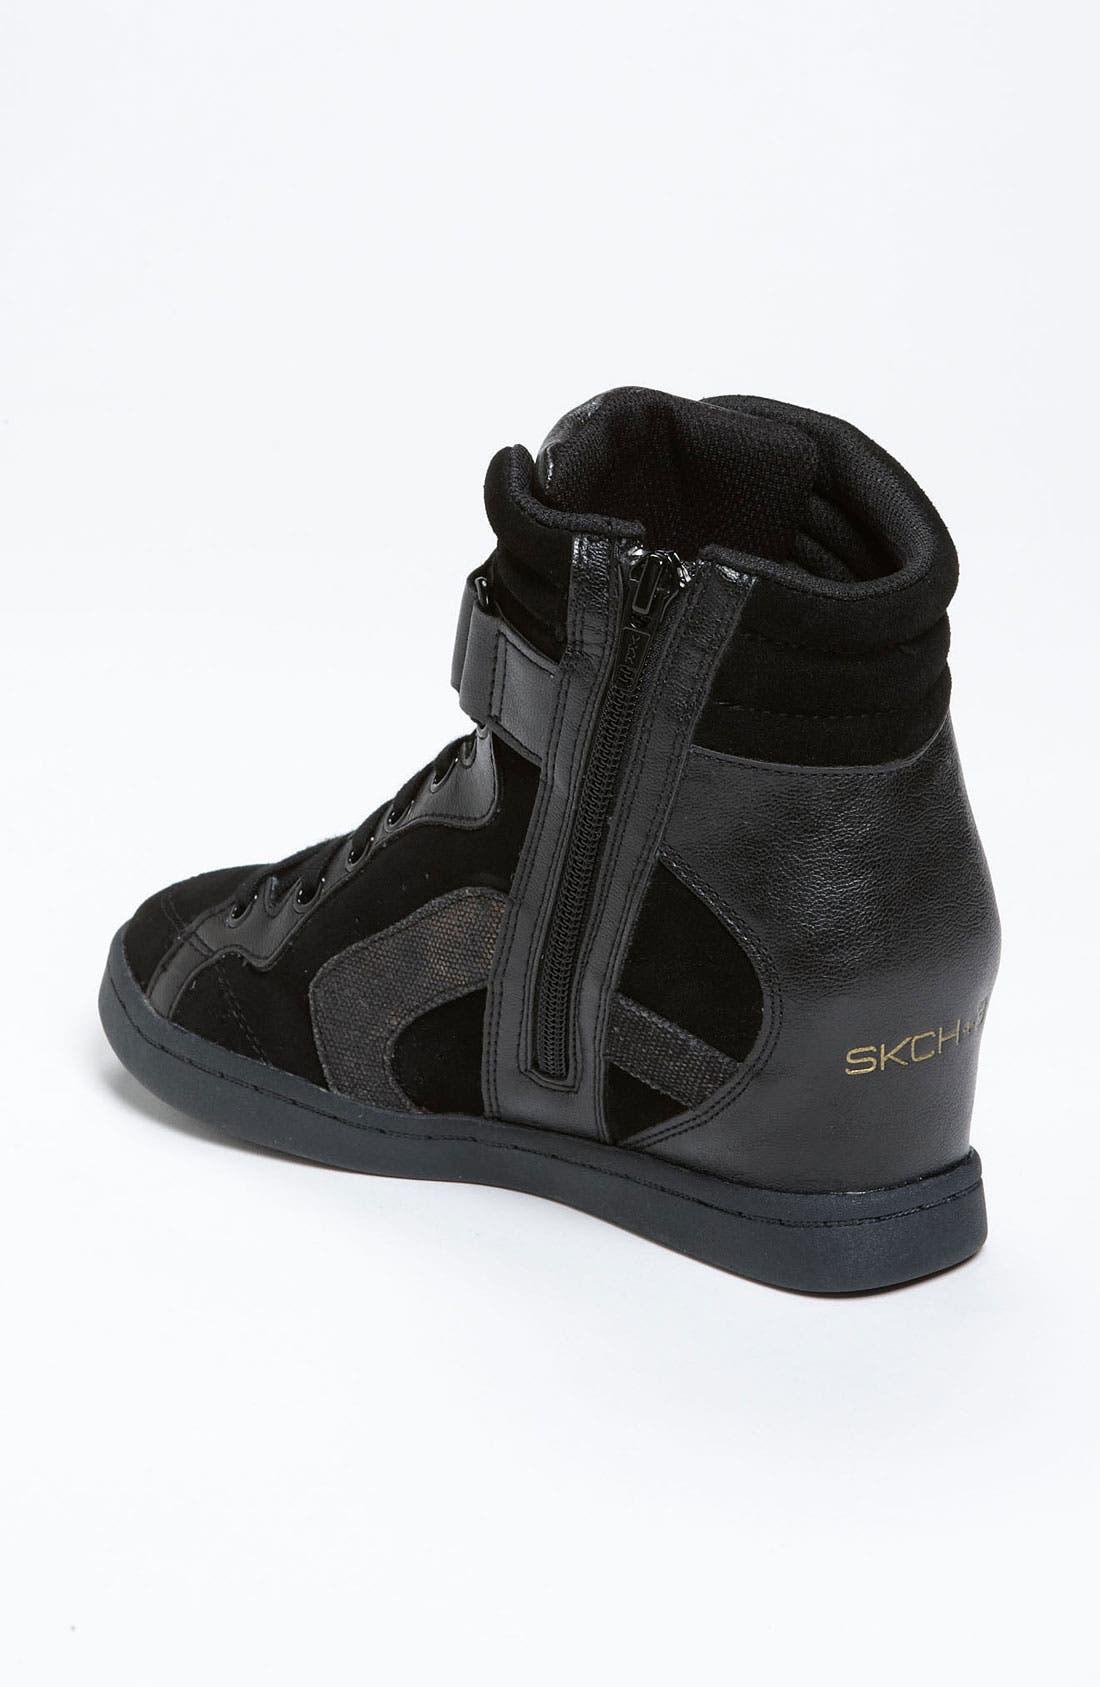 Alternate Image 2  - SKECHERS 'Three Booster' Wedge Sneaker (Women)